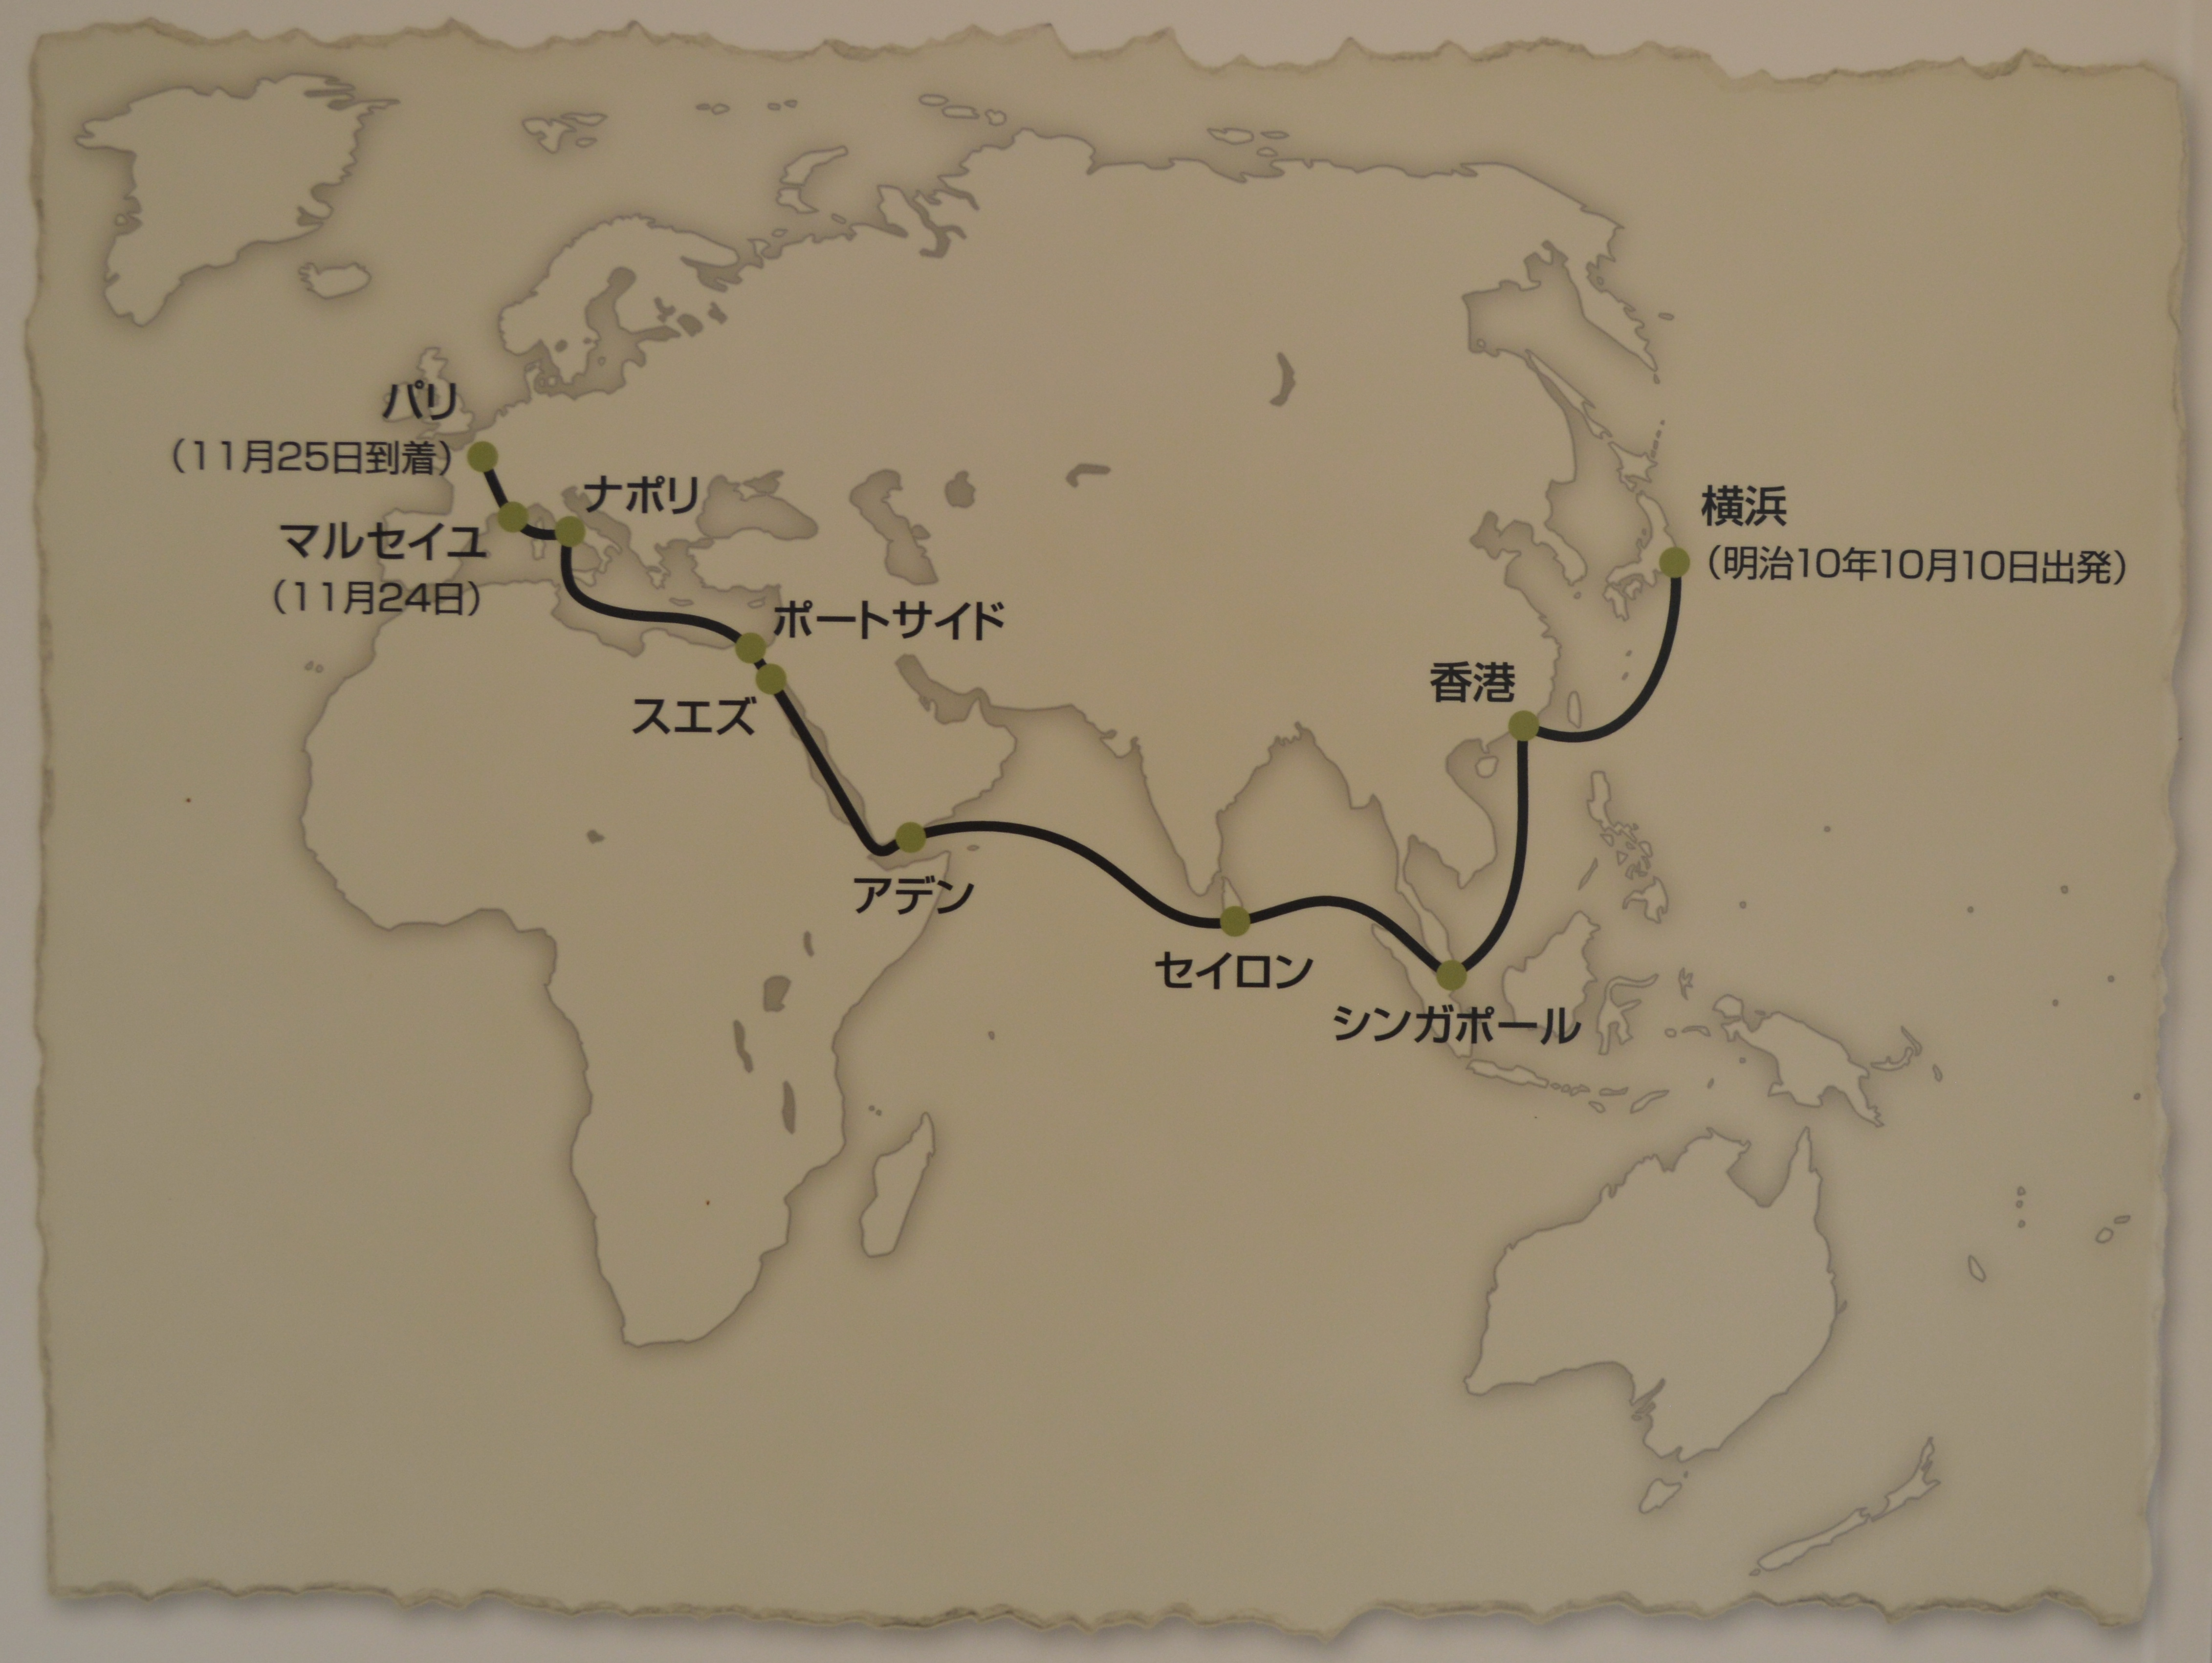 Map of the journey